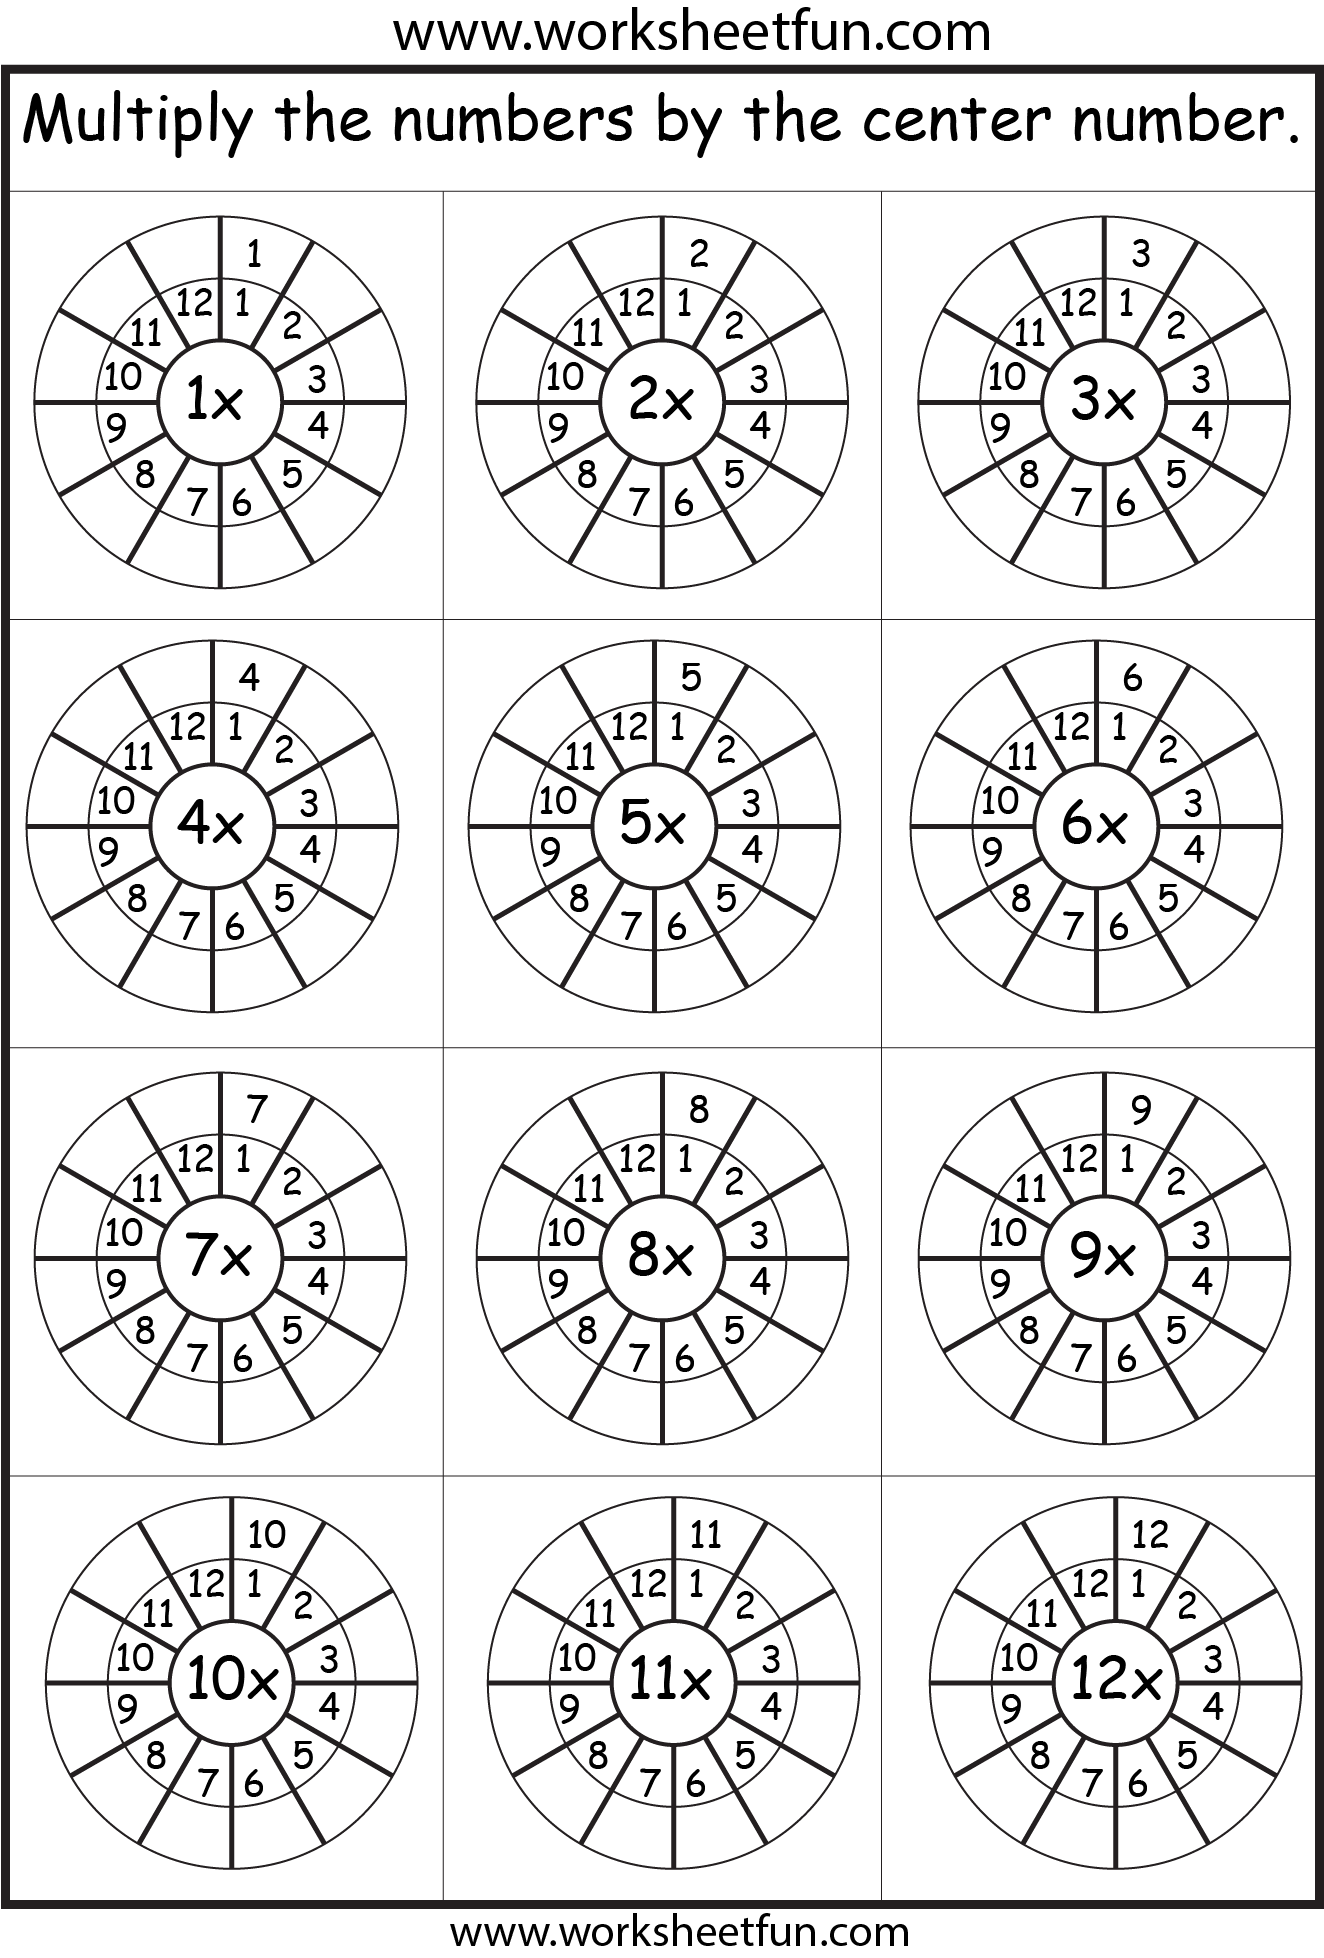 math worksheet : 1000 images about school on pinterest  long division division  : Fun Division Worksheets 4th Grade